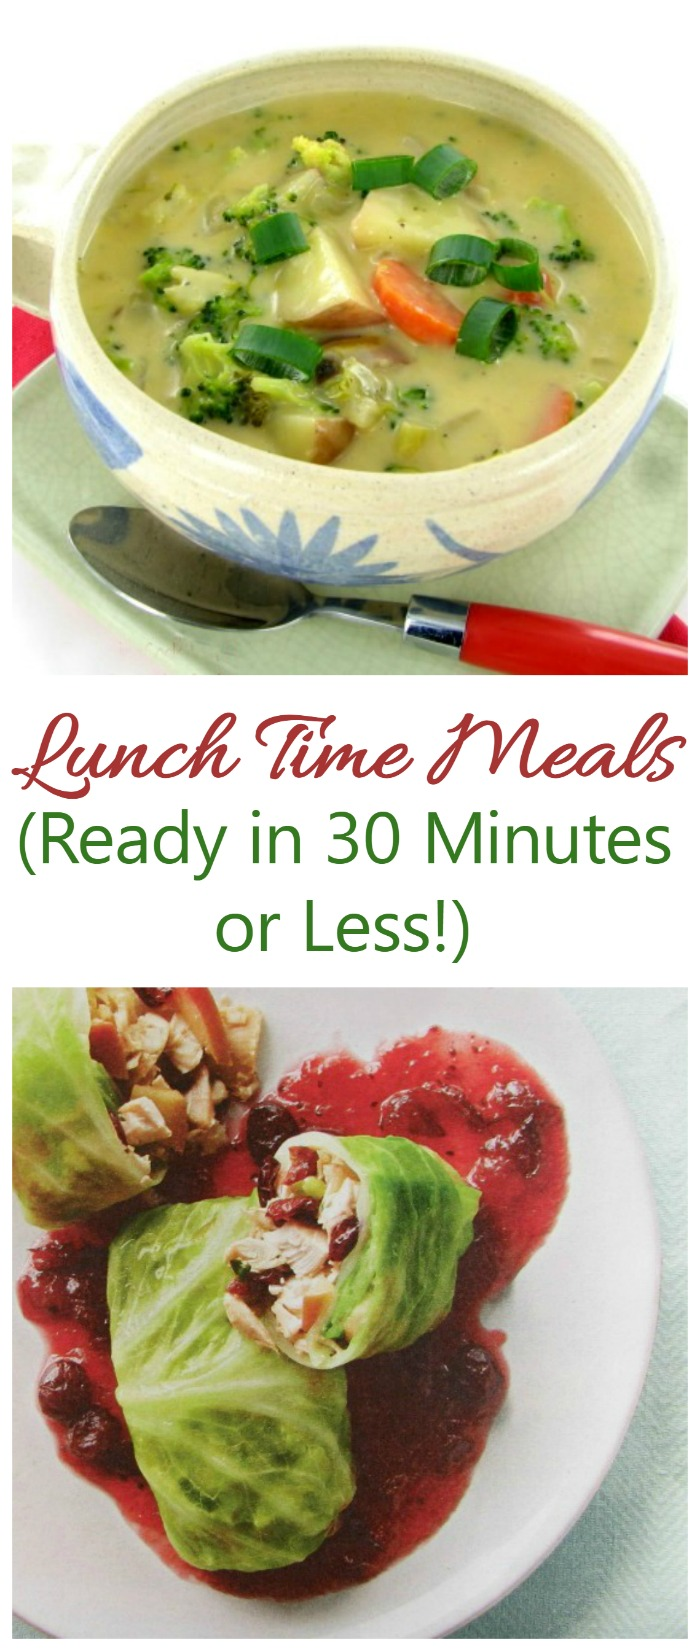 Great 30 minute meals for lunch that taste amazing!